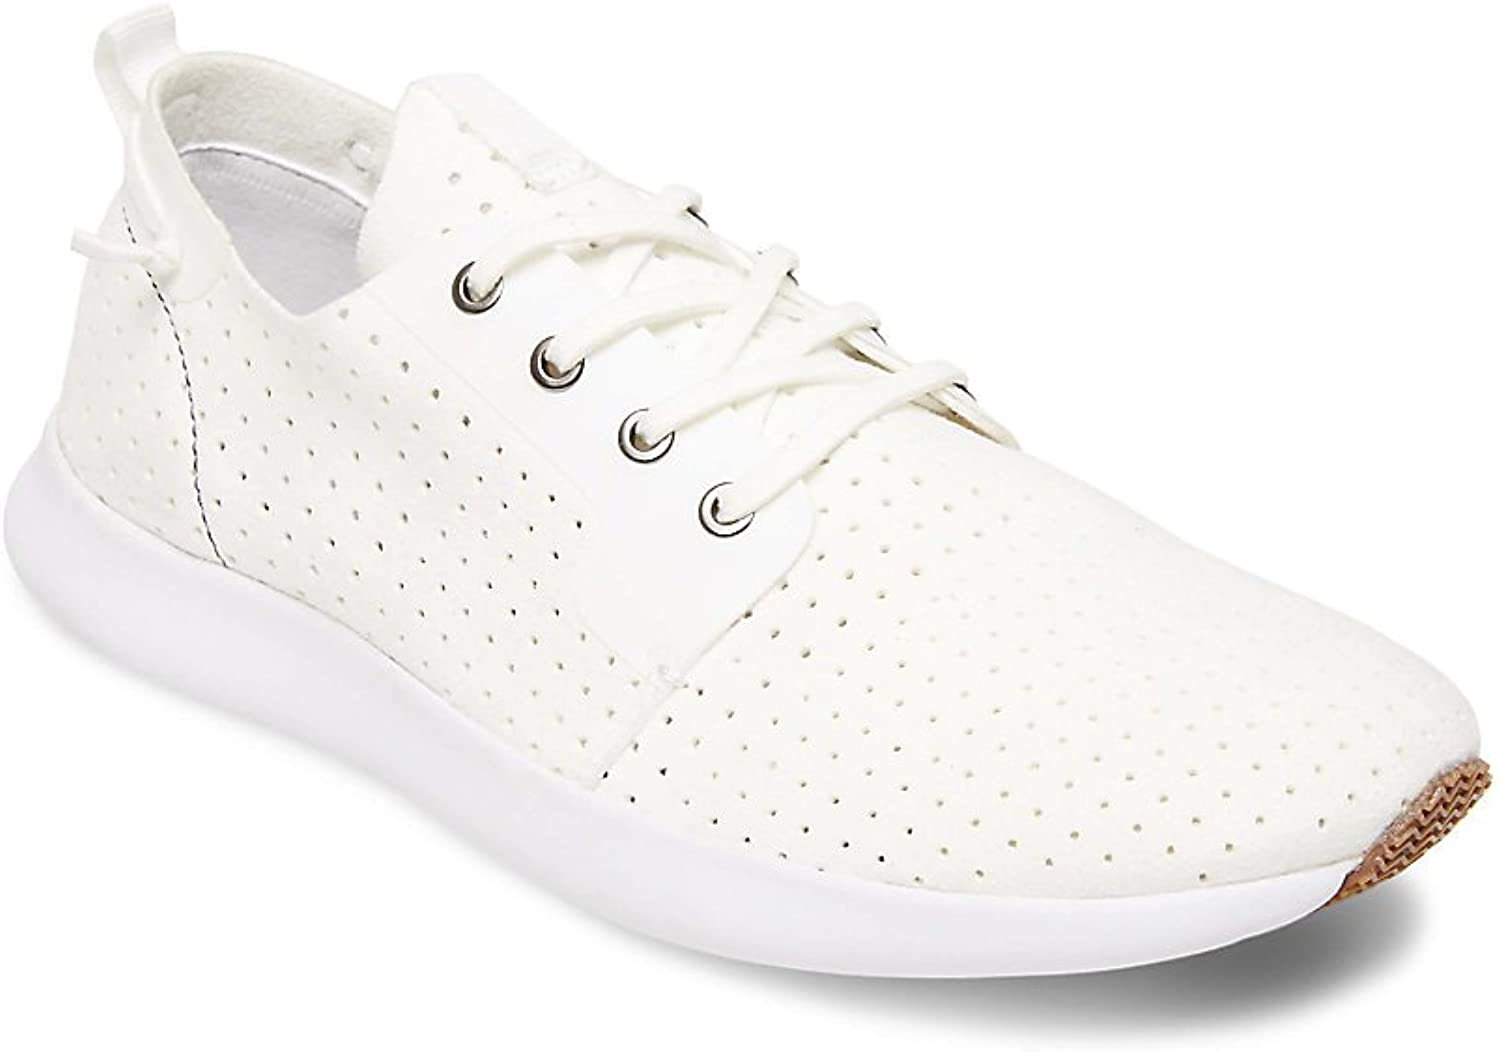 Steve Madden Mens Brick Low Top Lace Up Fashion Sneakers